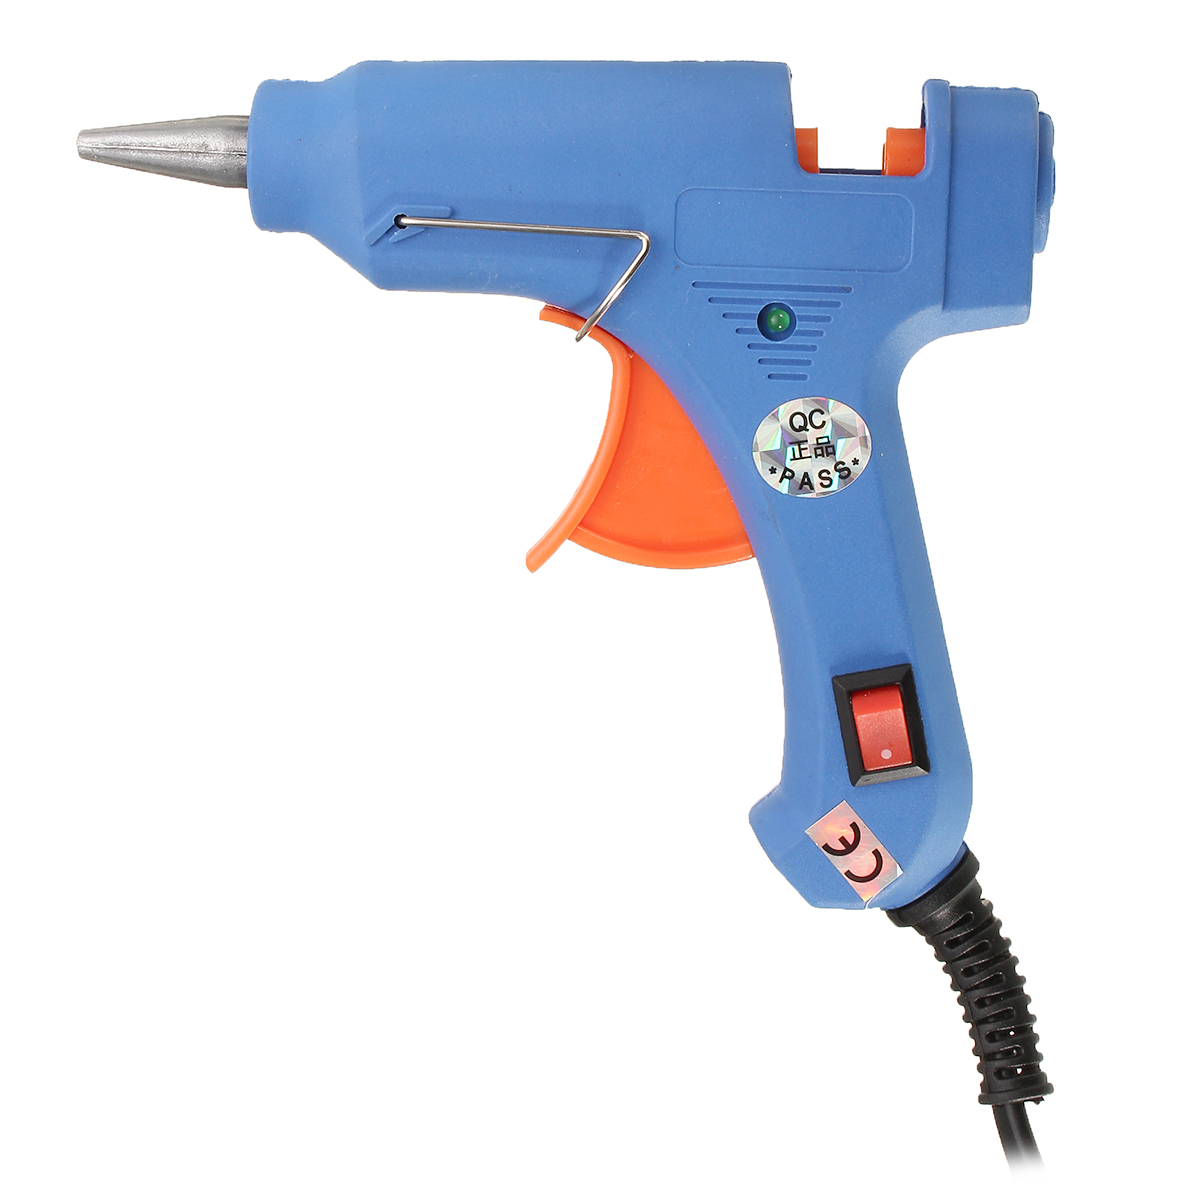 20/100W Mini Electric Heating Hot Melt Glue Gun Professional Tool For Hobby Craft DIY US Plug